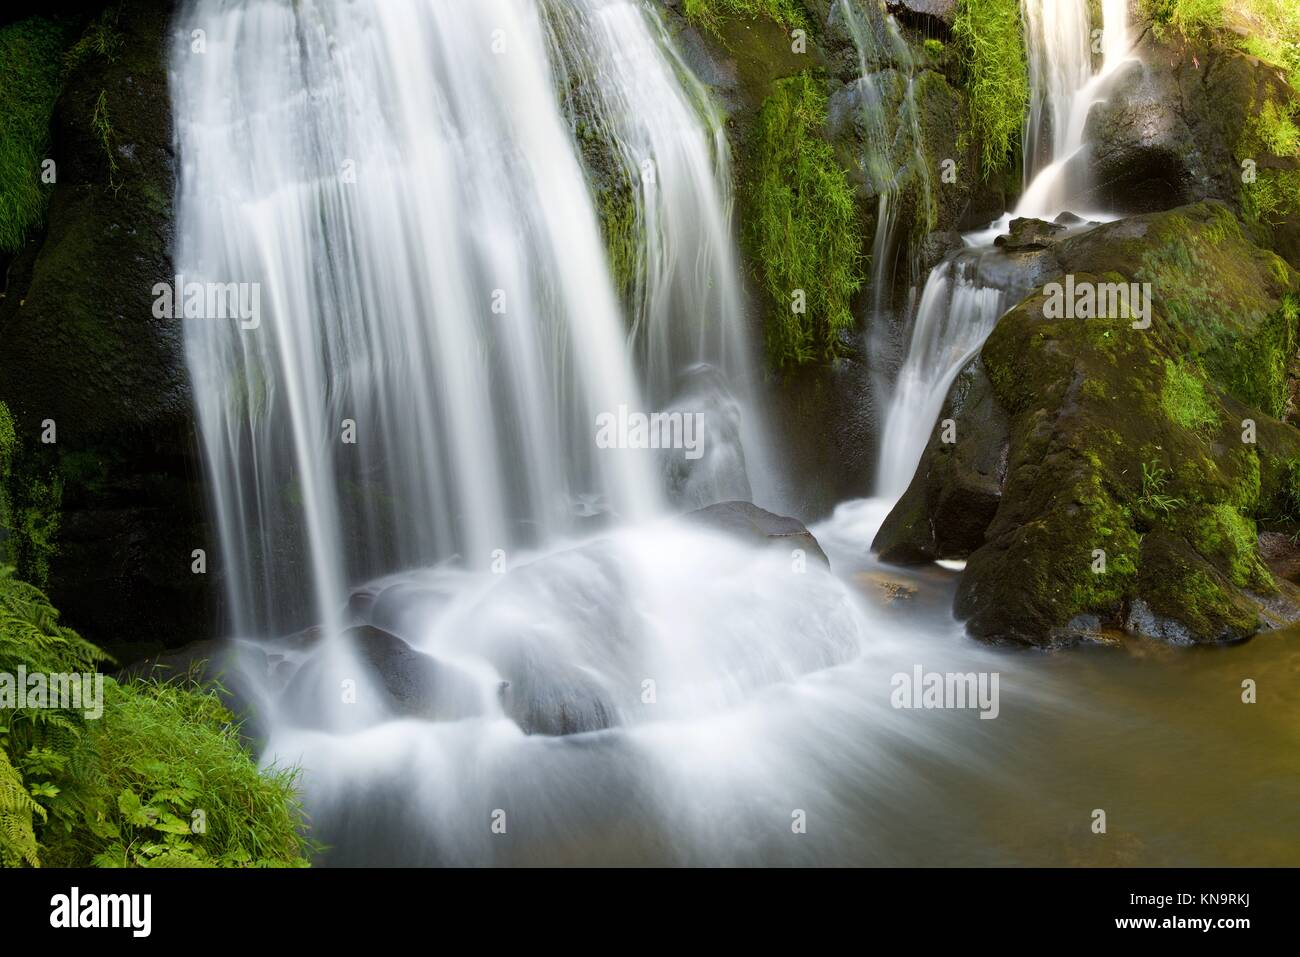 Waterfall in Triberg village, Black Forest, Germany. - Stock Image